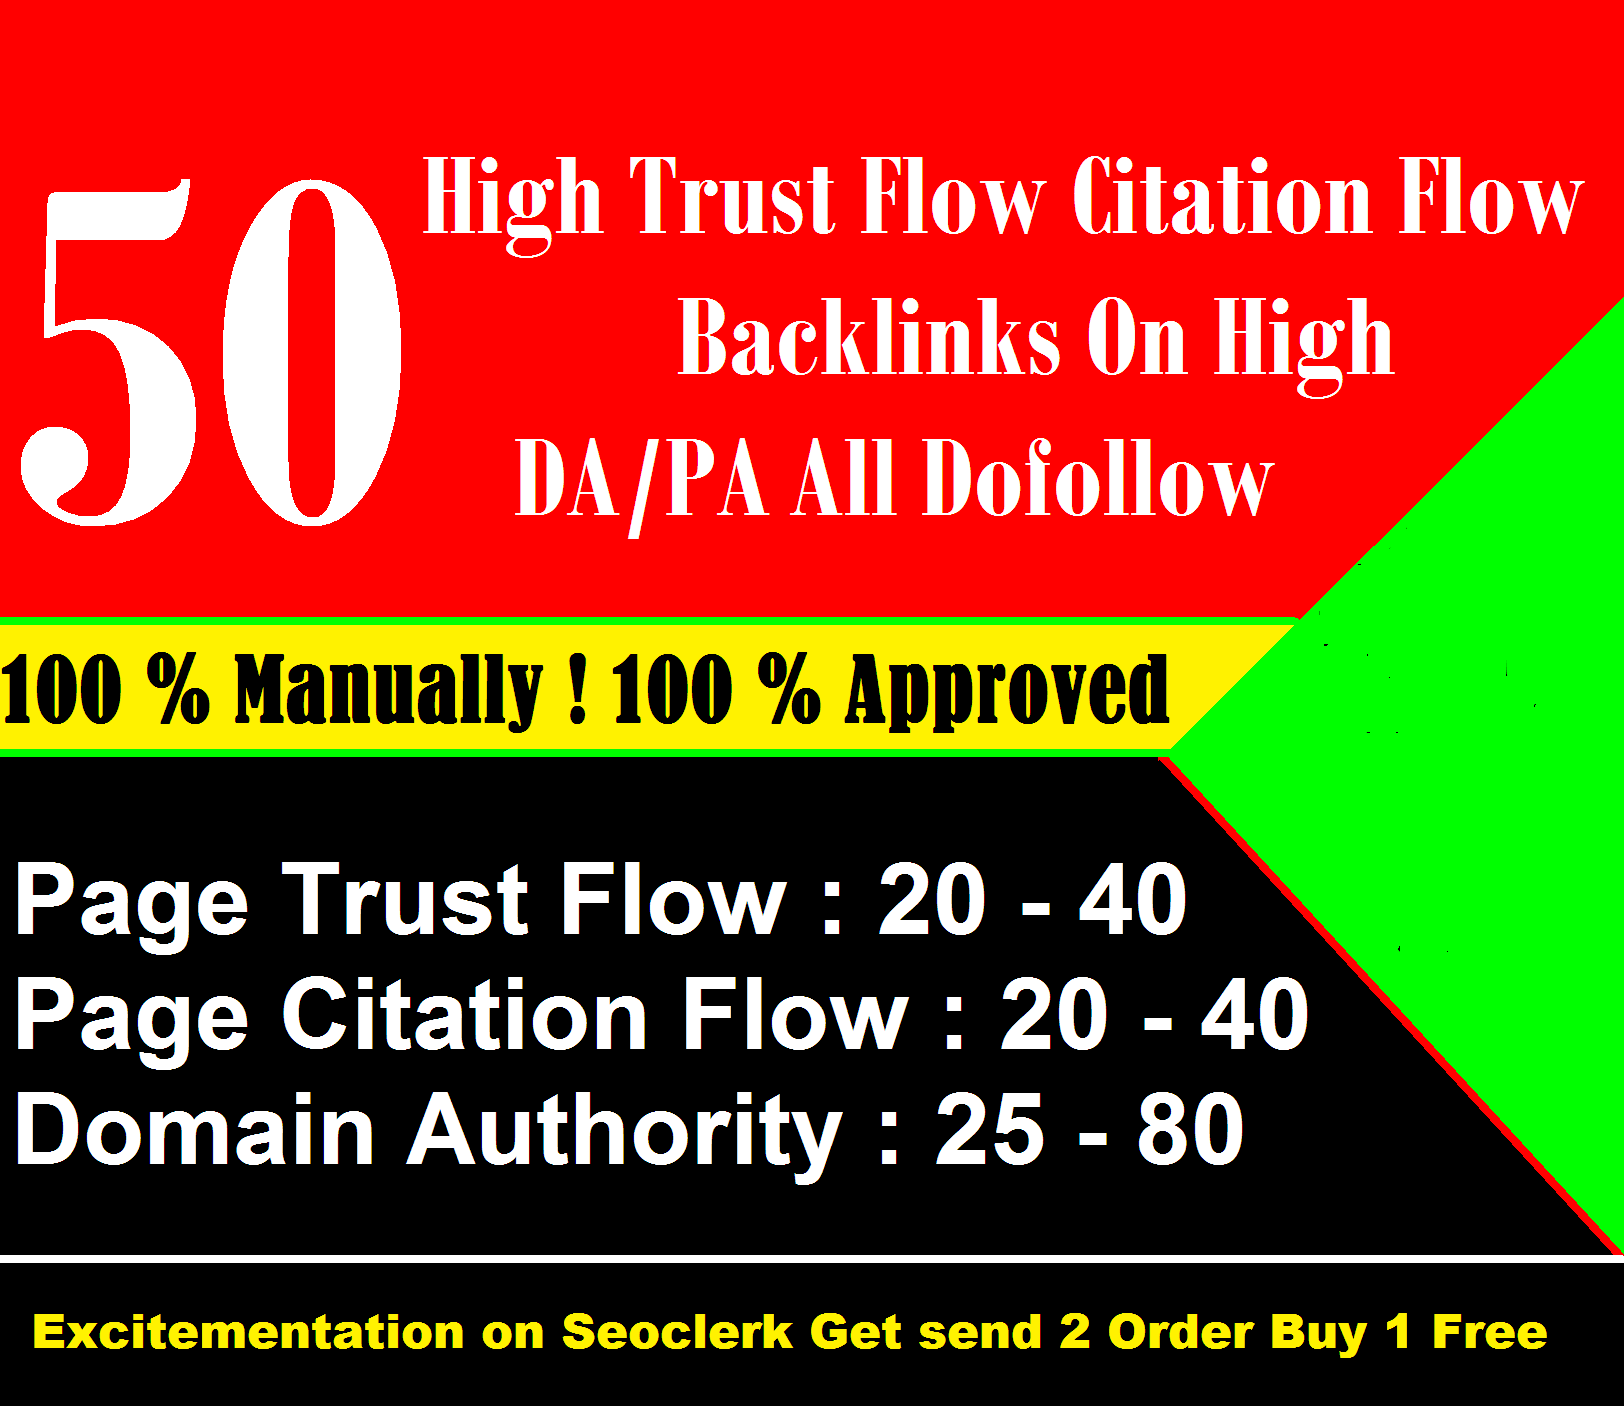 50 High Trust Flow Citation Flow Backlinks On High DA/PA ALL Dofollow